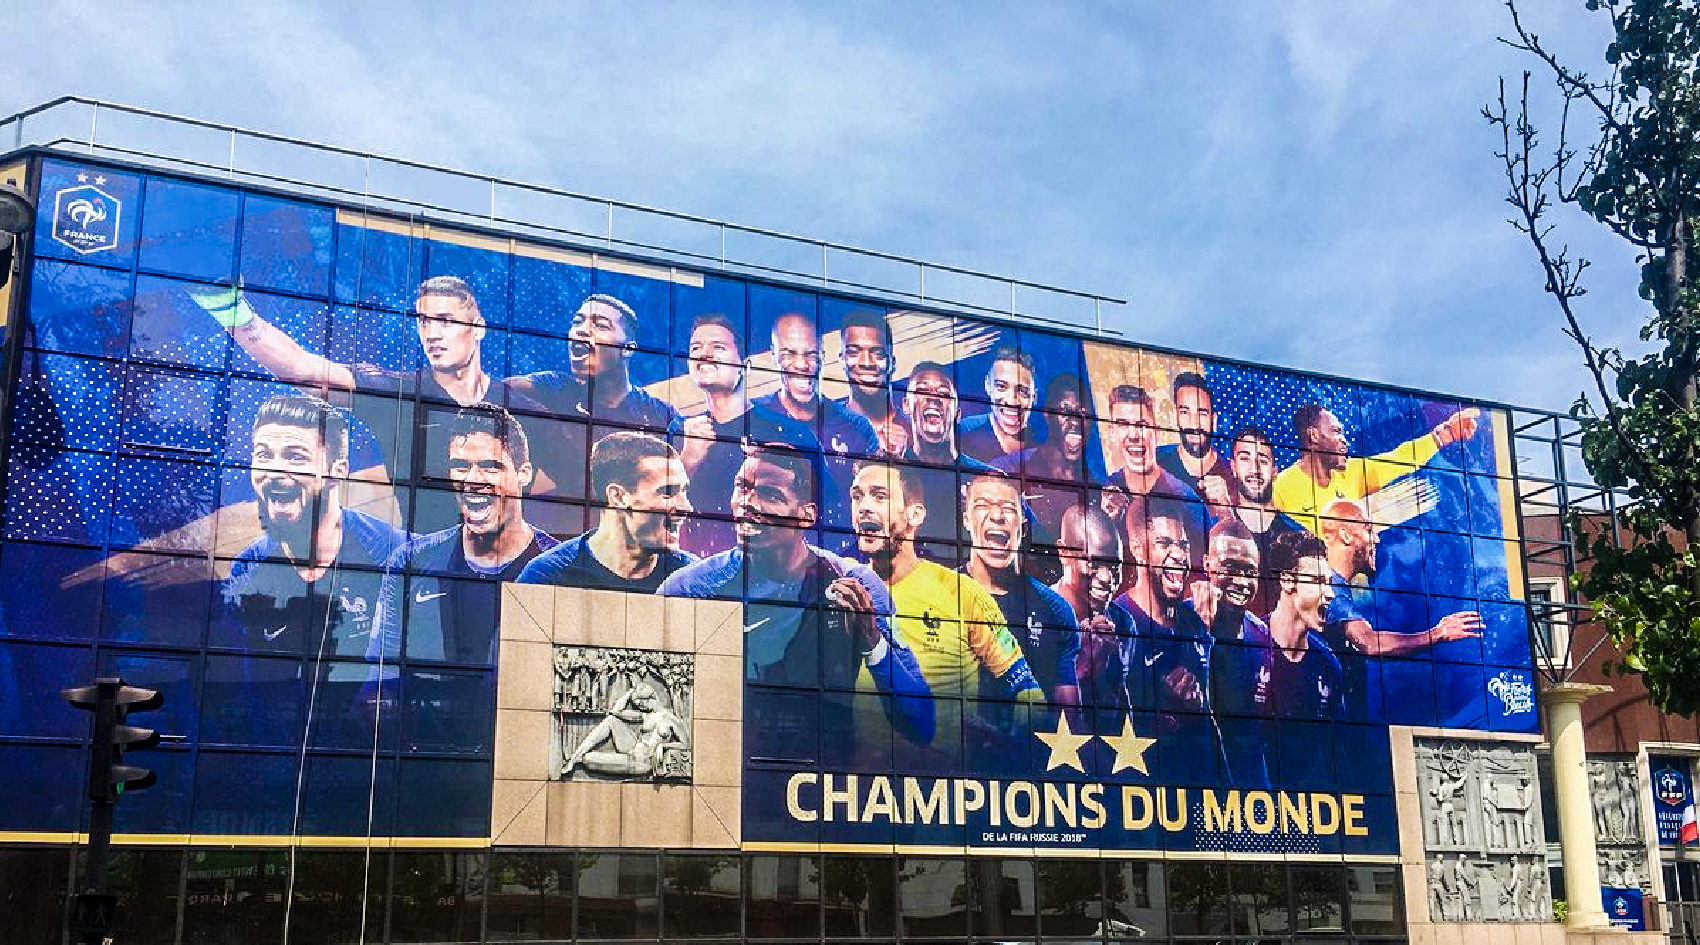 FFF_fiers_detre_bleus_federation_francaise_french_football_champions_monde_coupe_du_monde_world_cup